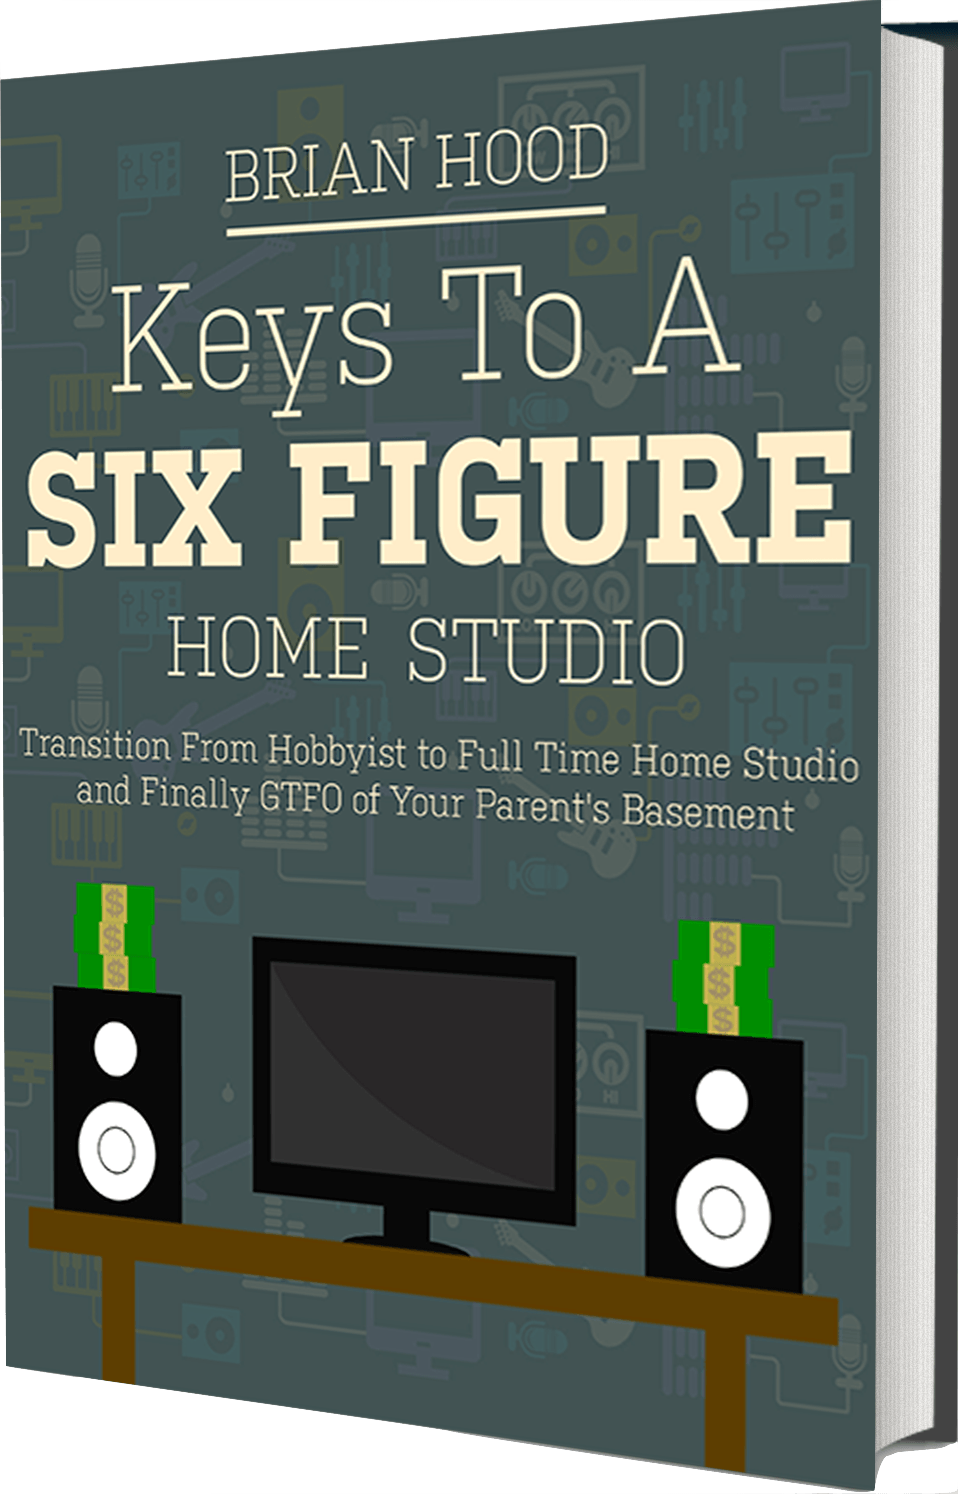 Are you really a six figure home studio free ebook keys to a six figure home studio fandeluxe Ebook collections